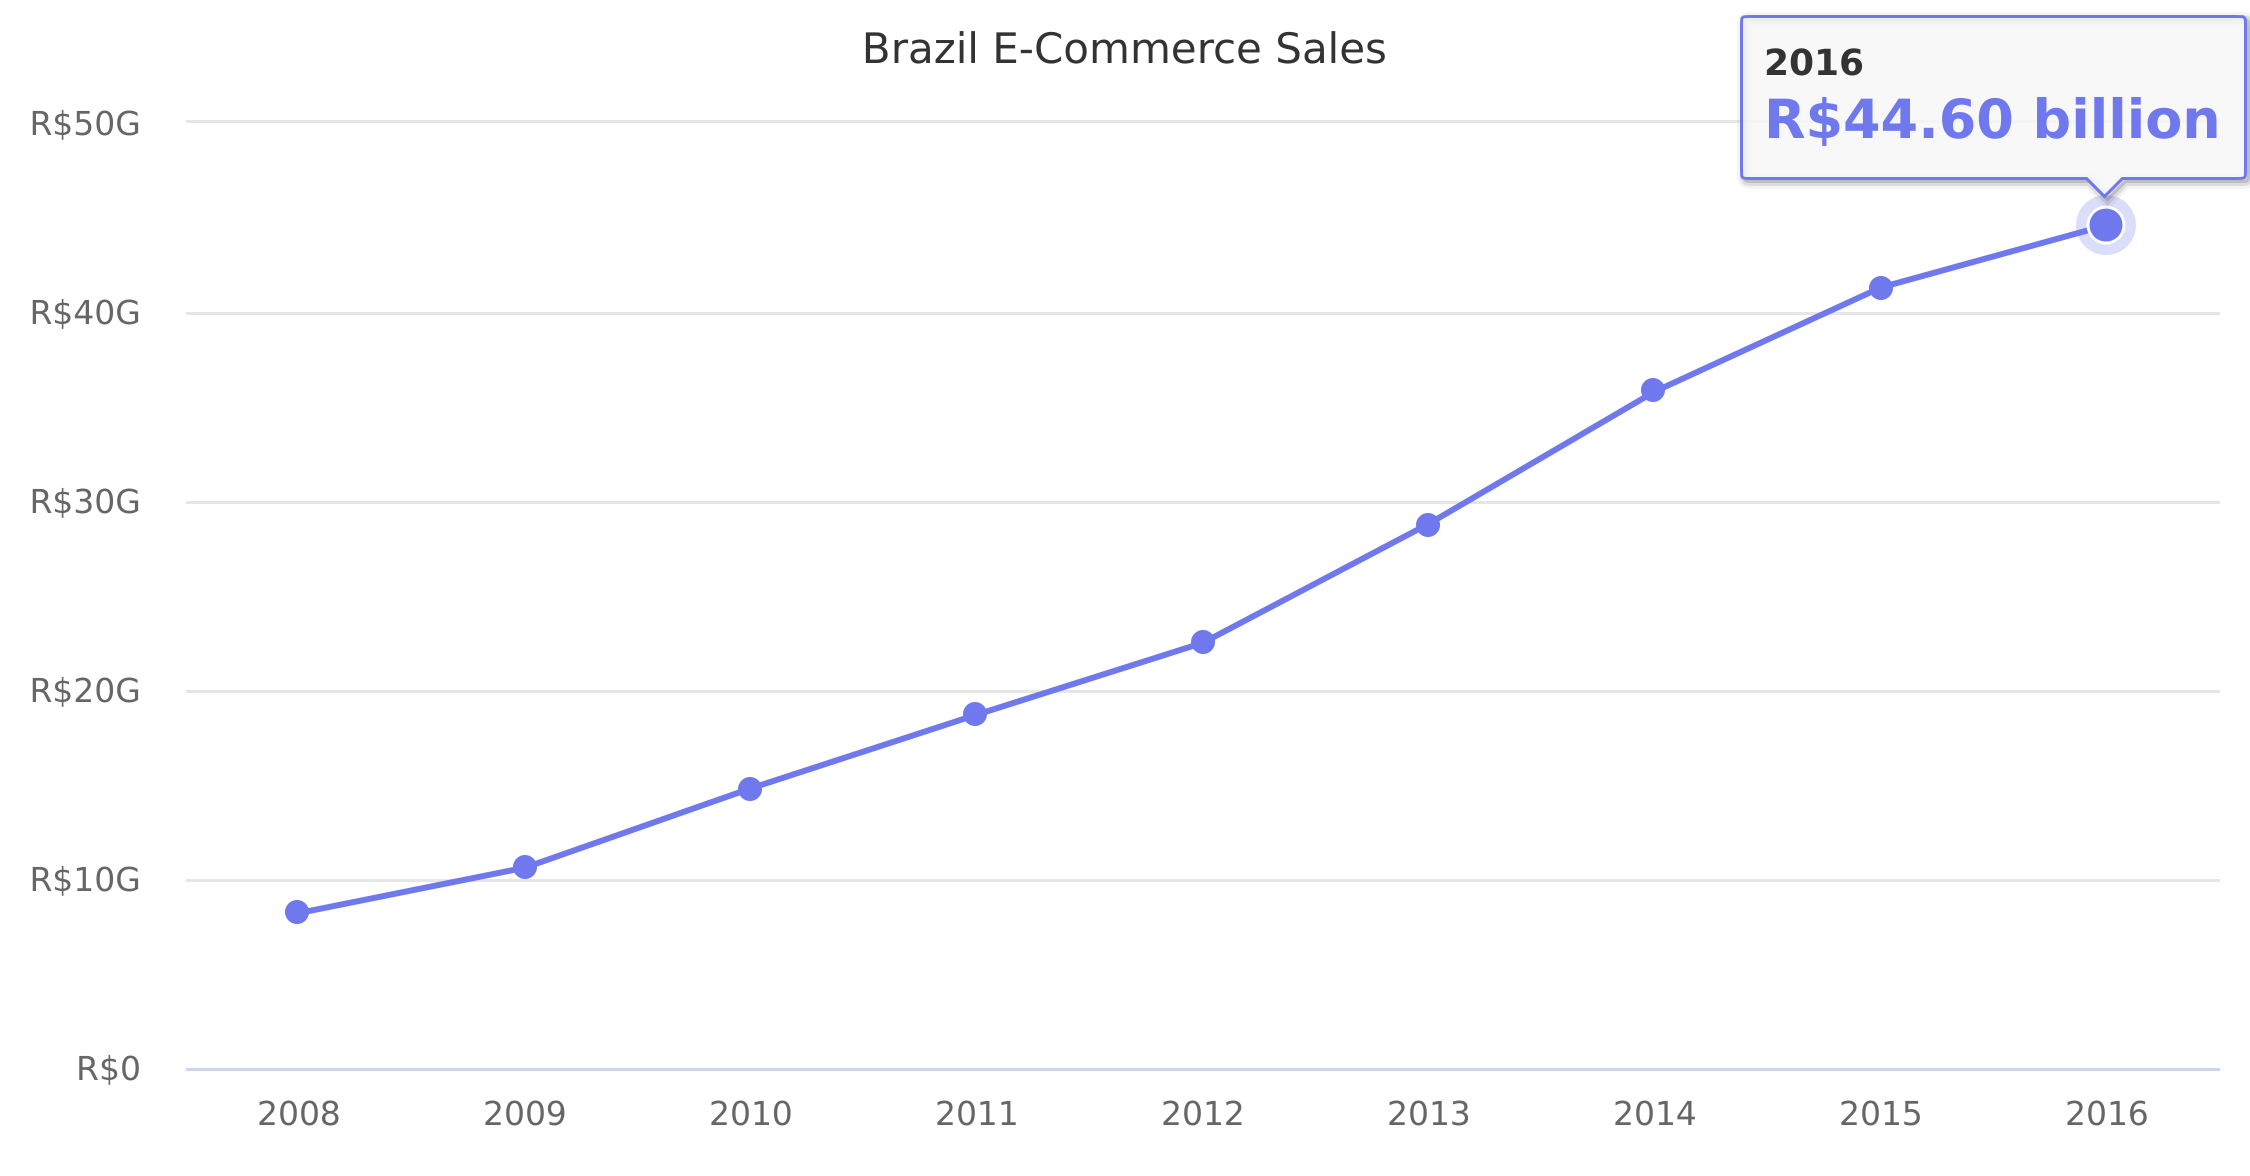 Brazil E-Commerce Sales 2008-2016